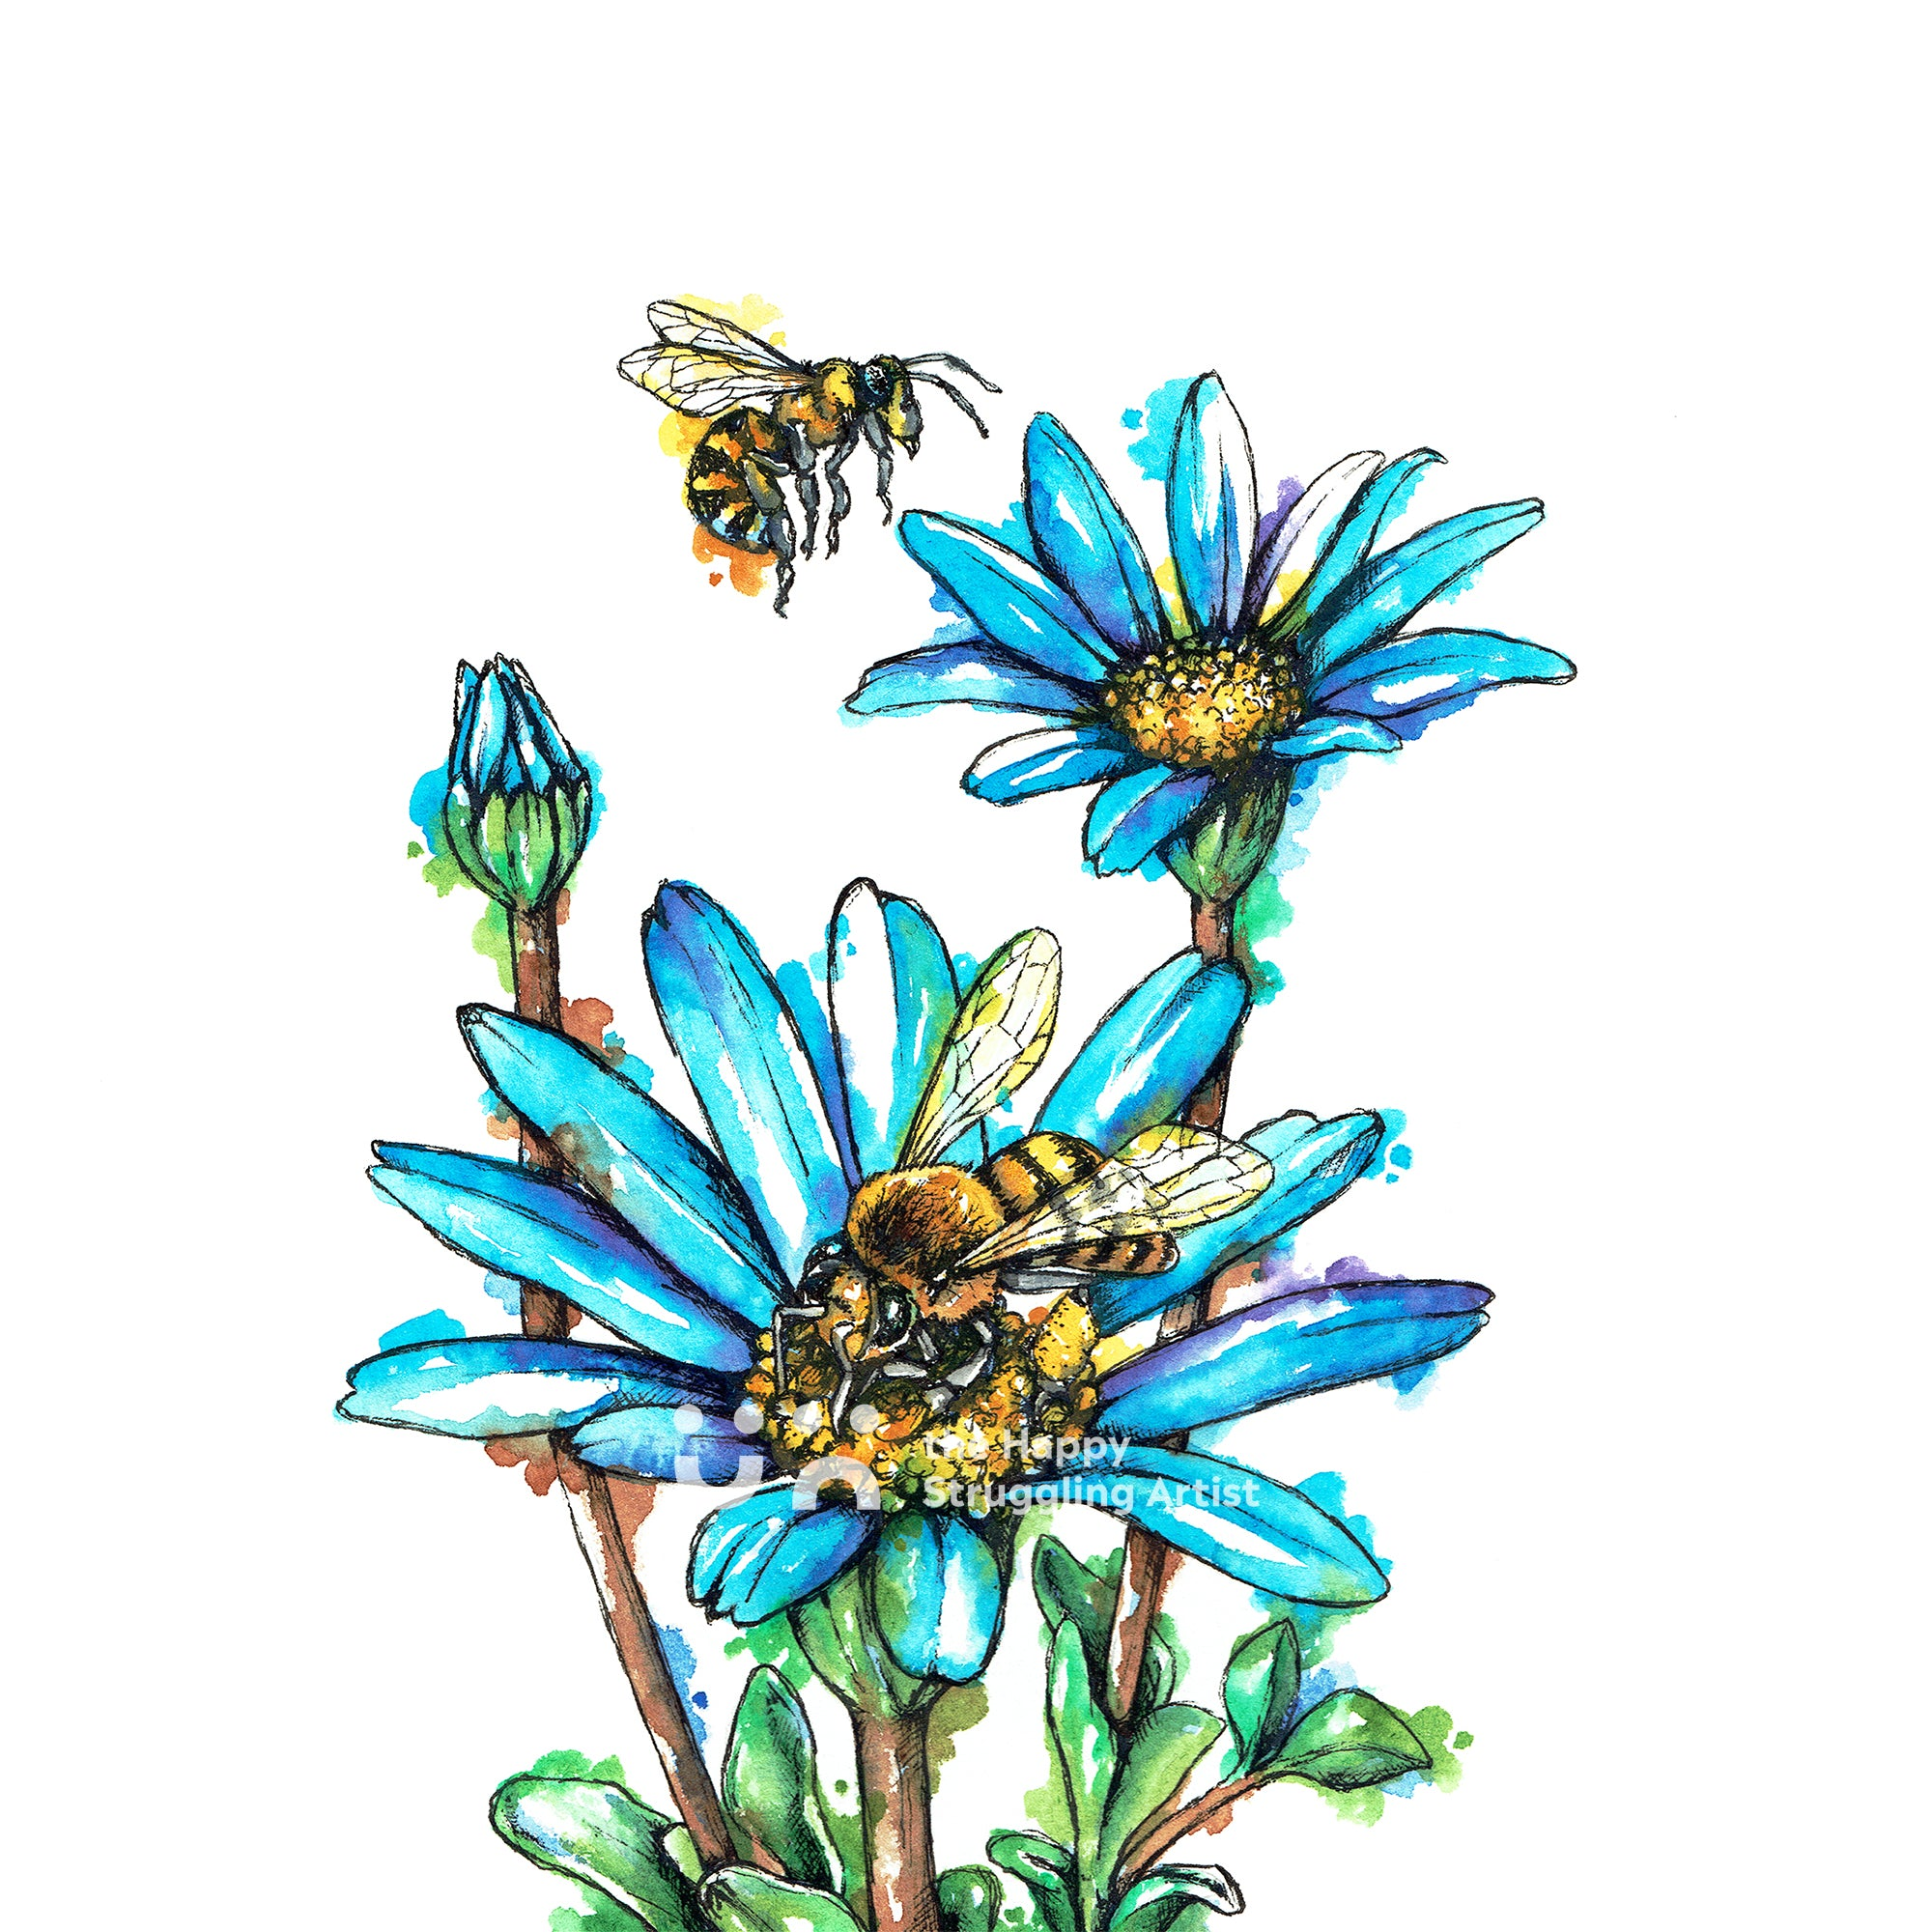 Honey Bees Downloadable Wall Art